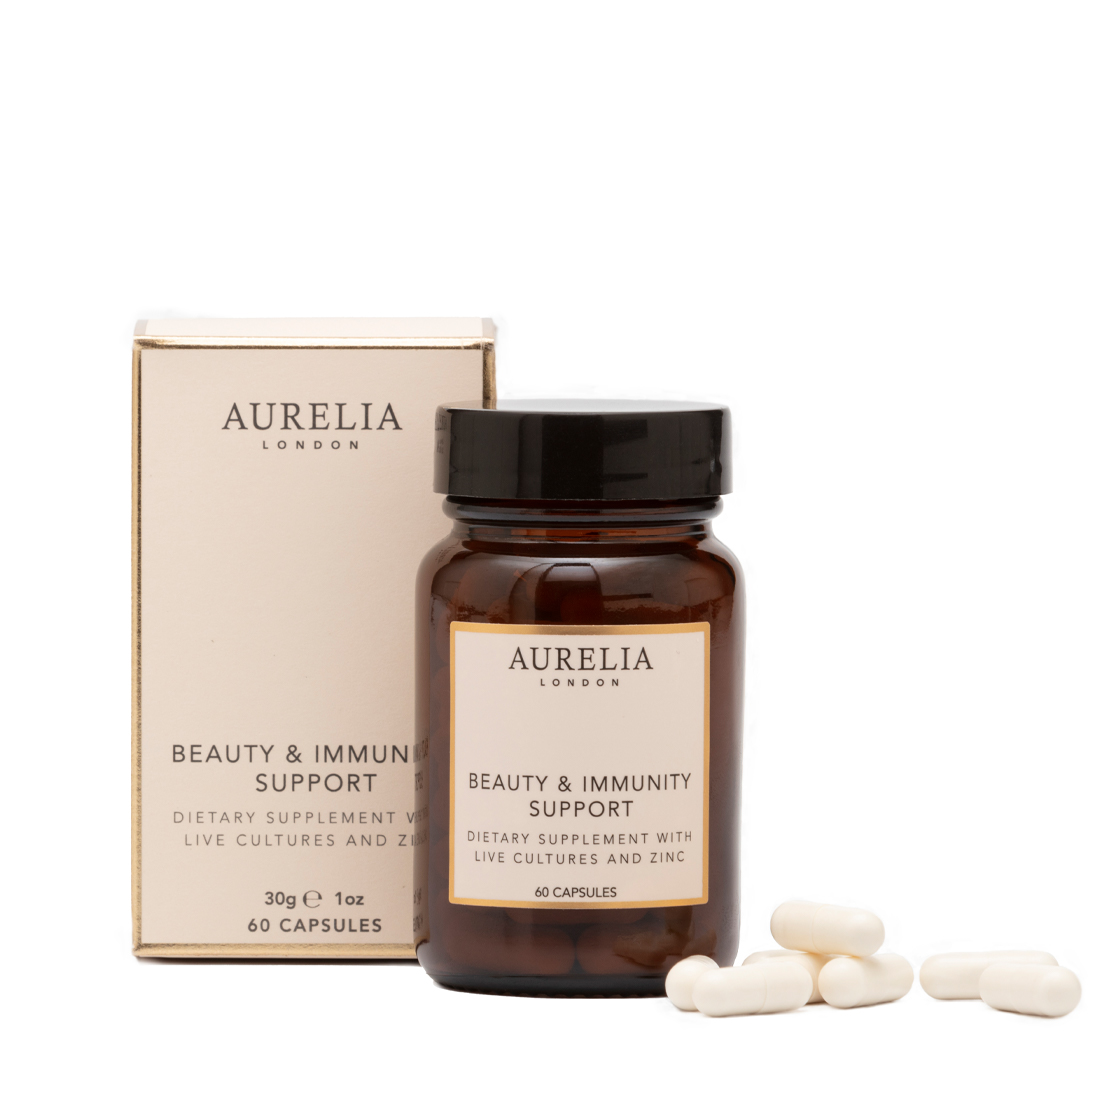 An image of Beauty & Immunity Support 60 capsules Aurelia London Probiotic Supplement with L...